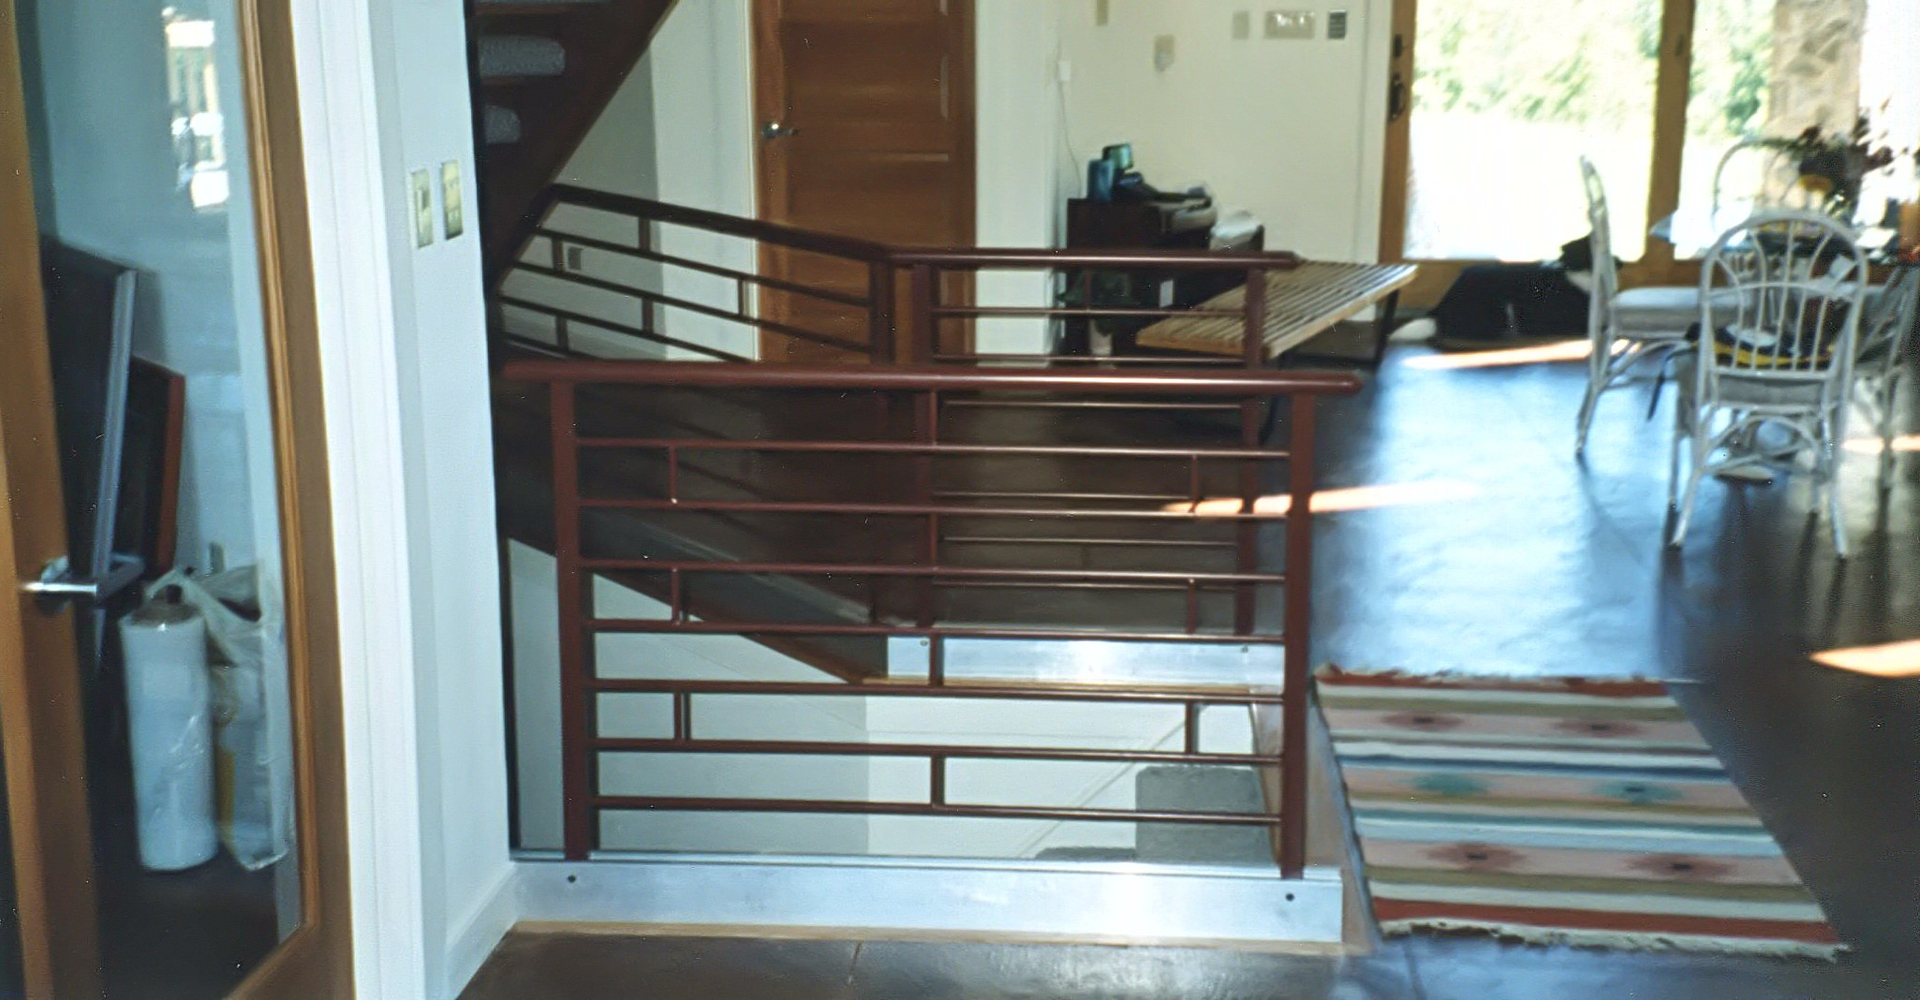 a railing with bent interior wood distressed handrail and iron finished art base railings